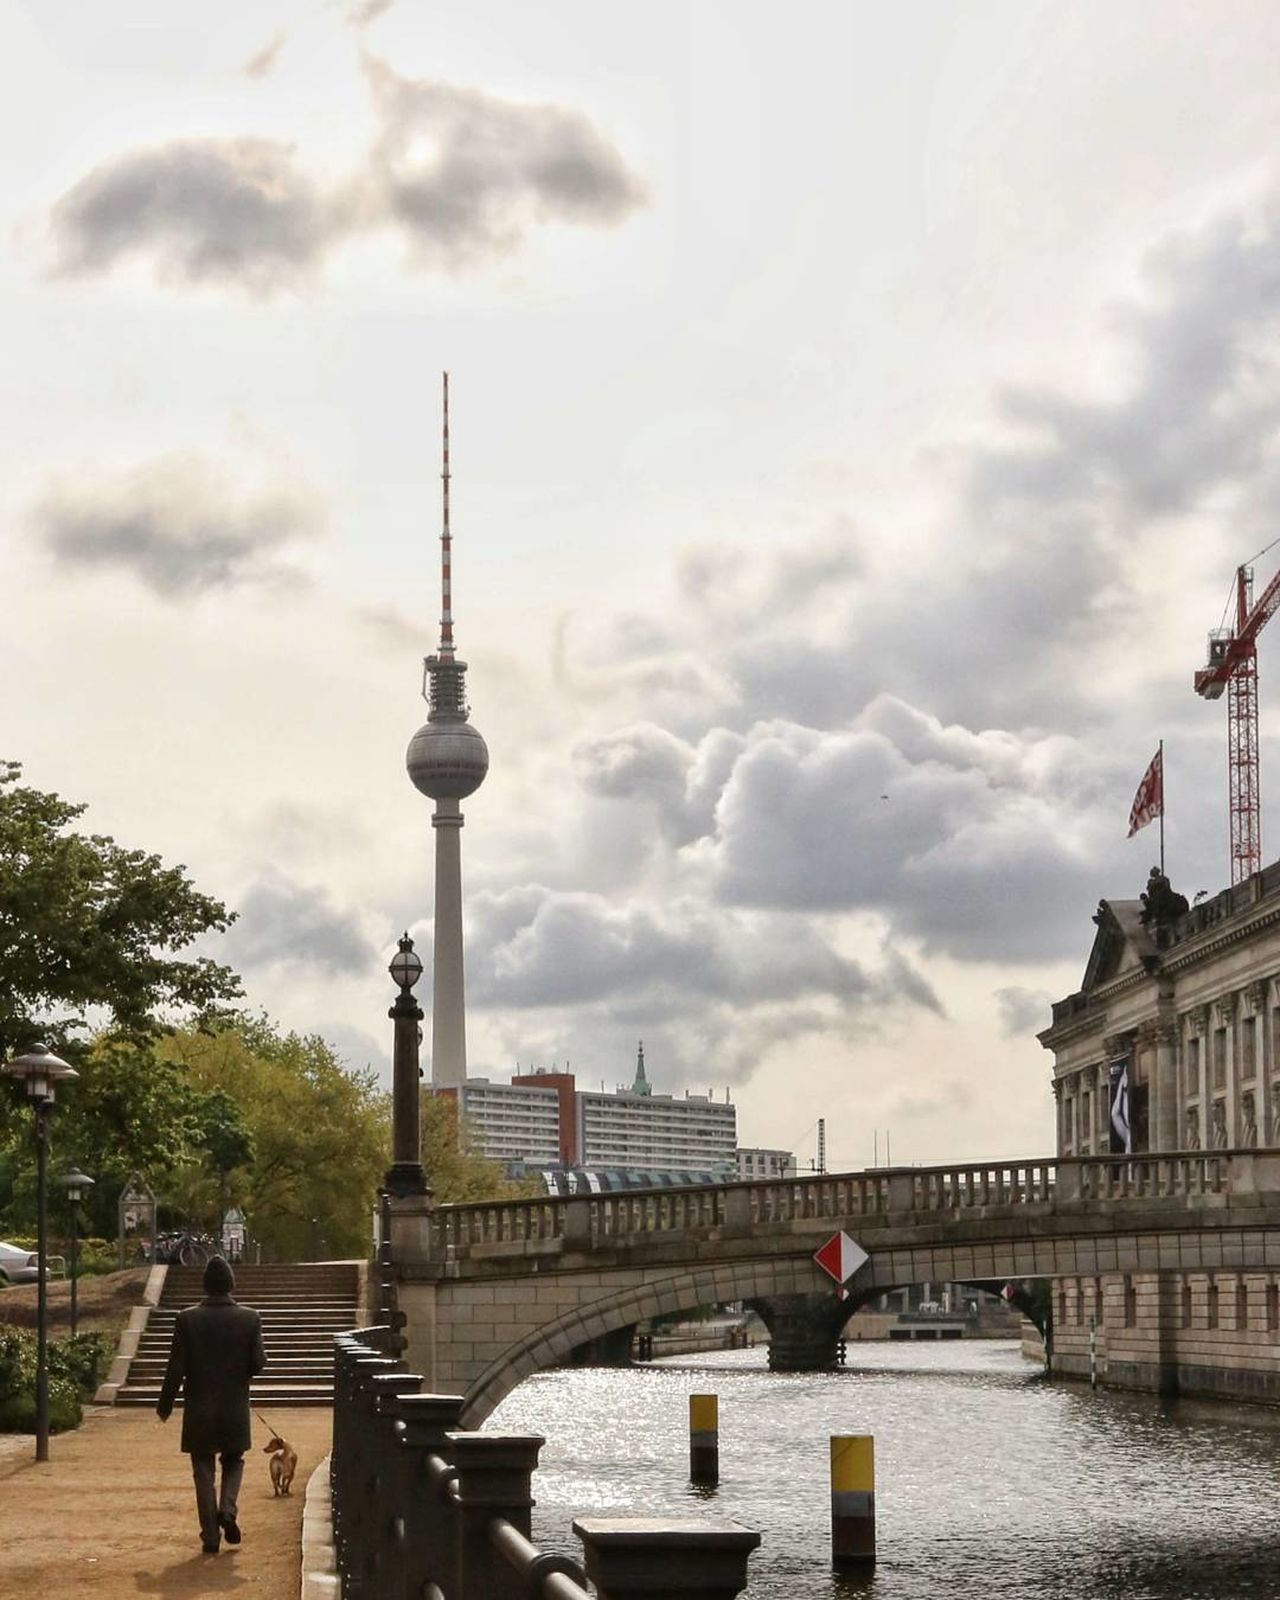 Tower Travel Destinations City Architecture Tourism Travel Cloud - Sky Communication Sky Cityscape Day Outdoors Built Structure Urban Skyline Adult People Full Length Adults Only Politics And Government One Person Eye4photography  EyeEm Best Shots Berlin Life